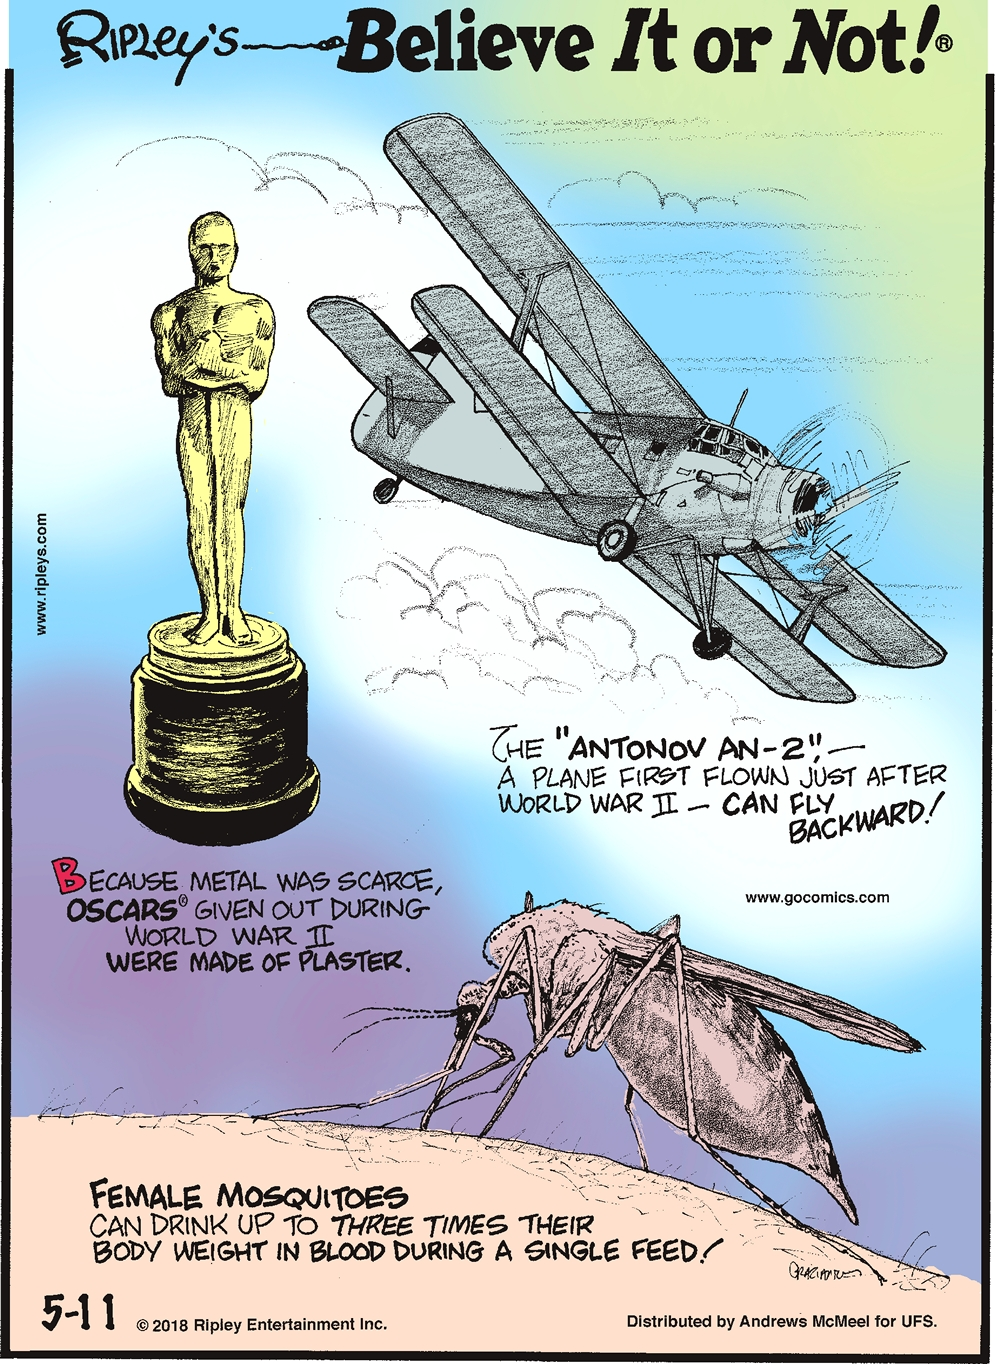 "Because metal was scarce, Oscars given out during World War II were made of plaster.-------------------- The ""Antono AN-2."" - a plane first flown just after World War II - can fly backward!-------------------- Female mosquitoes can drink up to three times their body weight in blood during a single feed!"